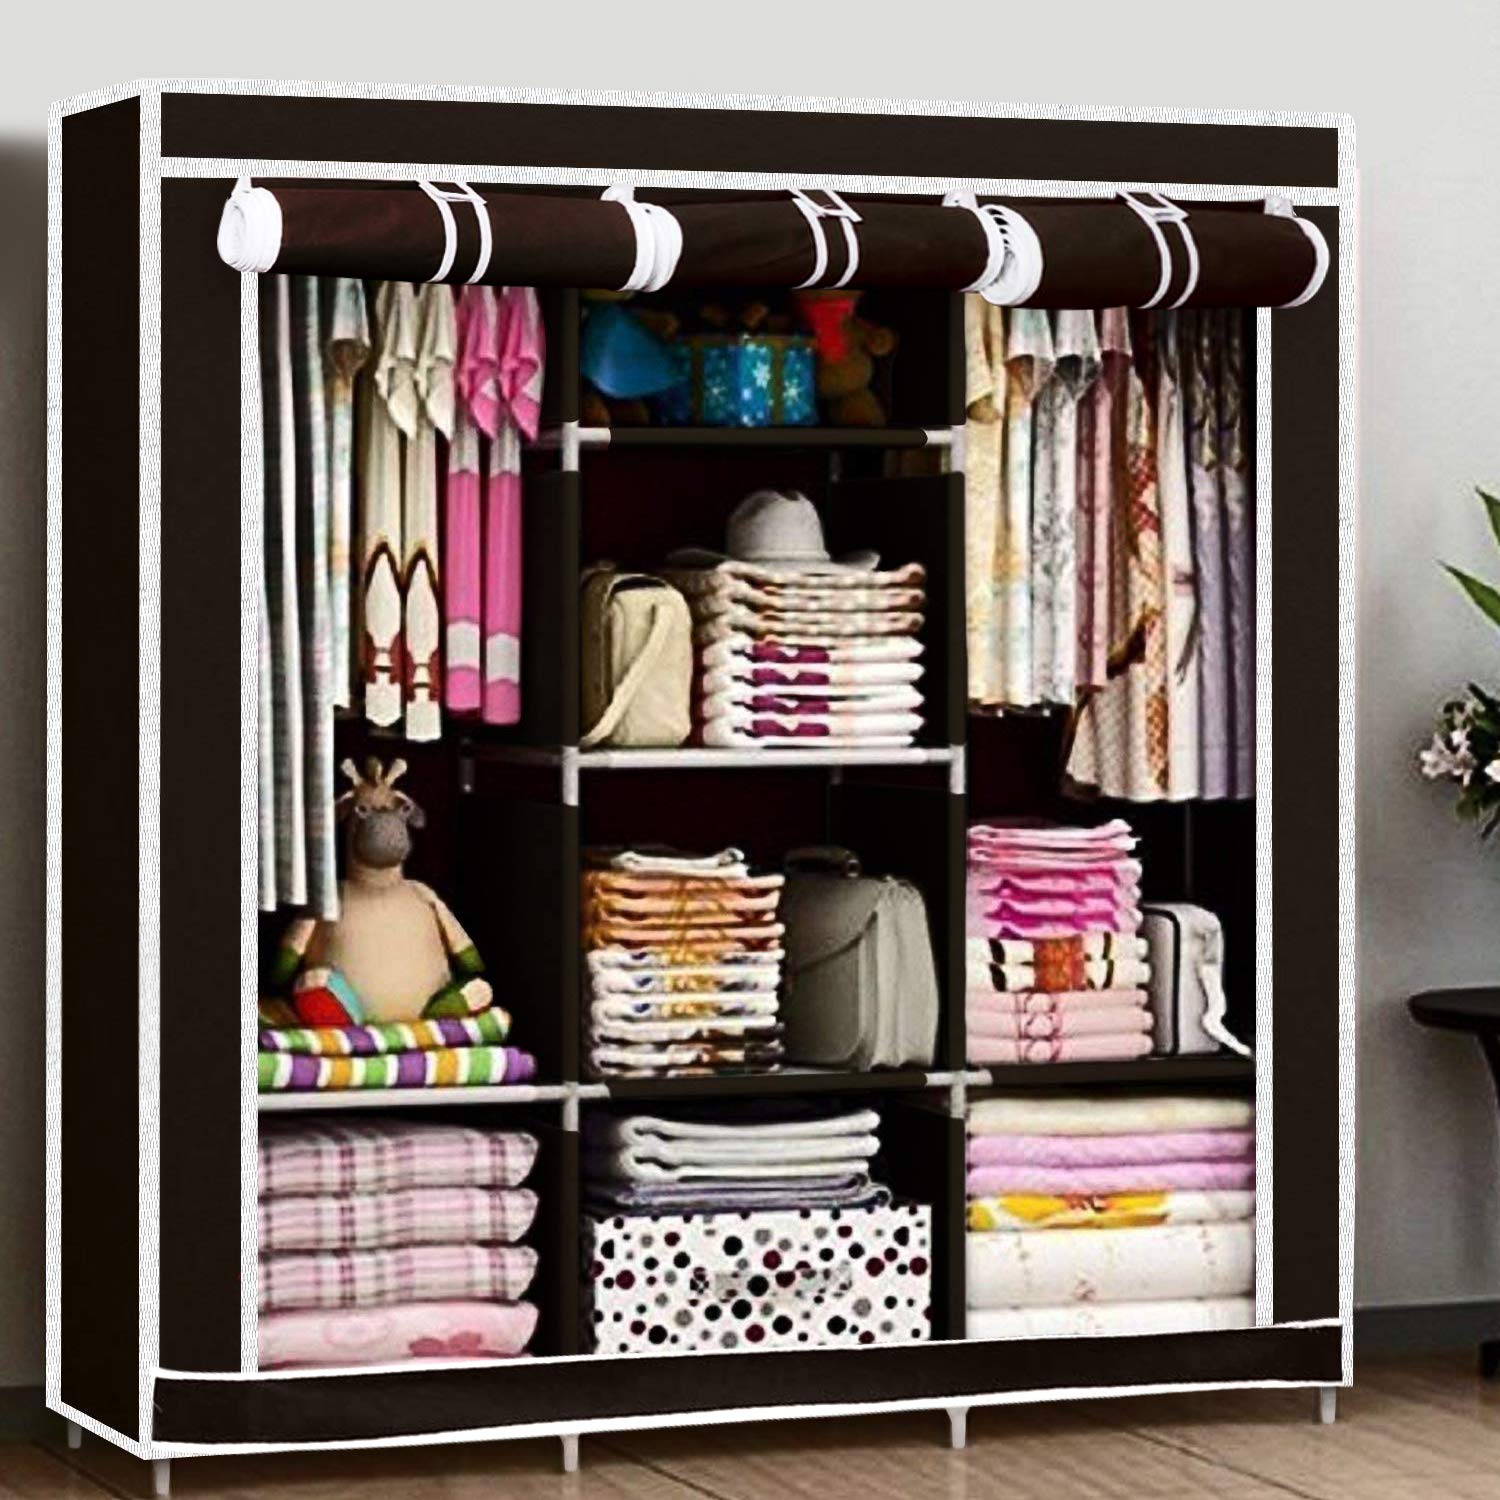 huge discount cbfc6 c2a91 Kurtzy Collapsible Clothes Storage Wardrobe Cupboard Closet with 6 Cabinet  and 2 Long Shelves Organizer Hanging Rail Rack Foldable Portable Canvas ...